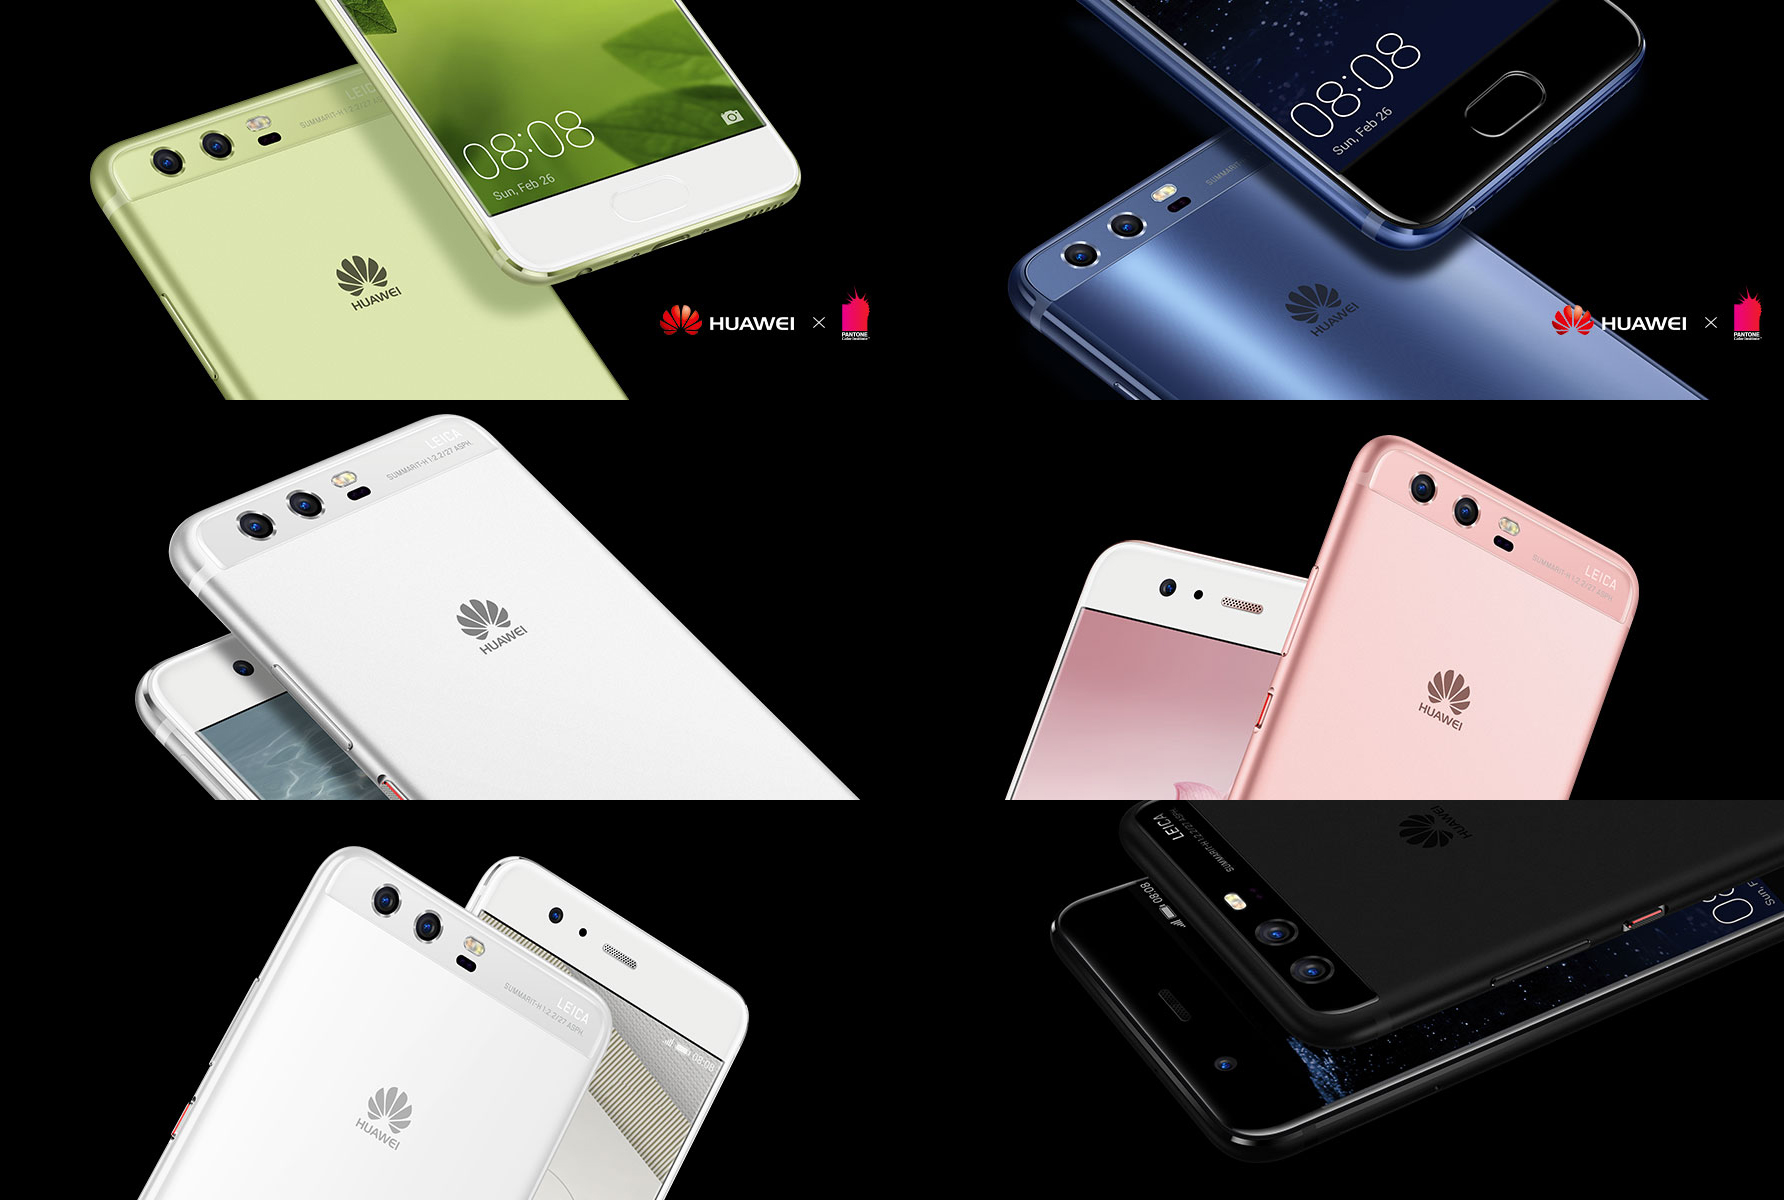 Huawei P10 New Colors